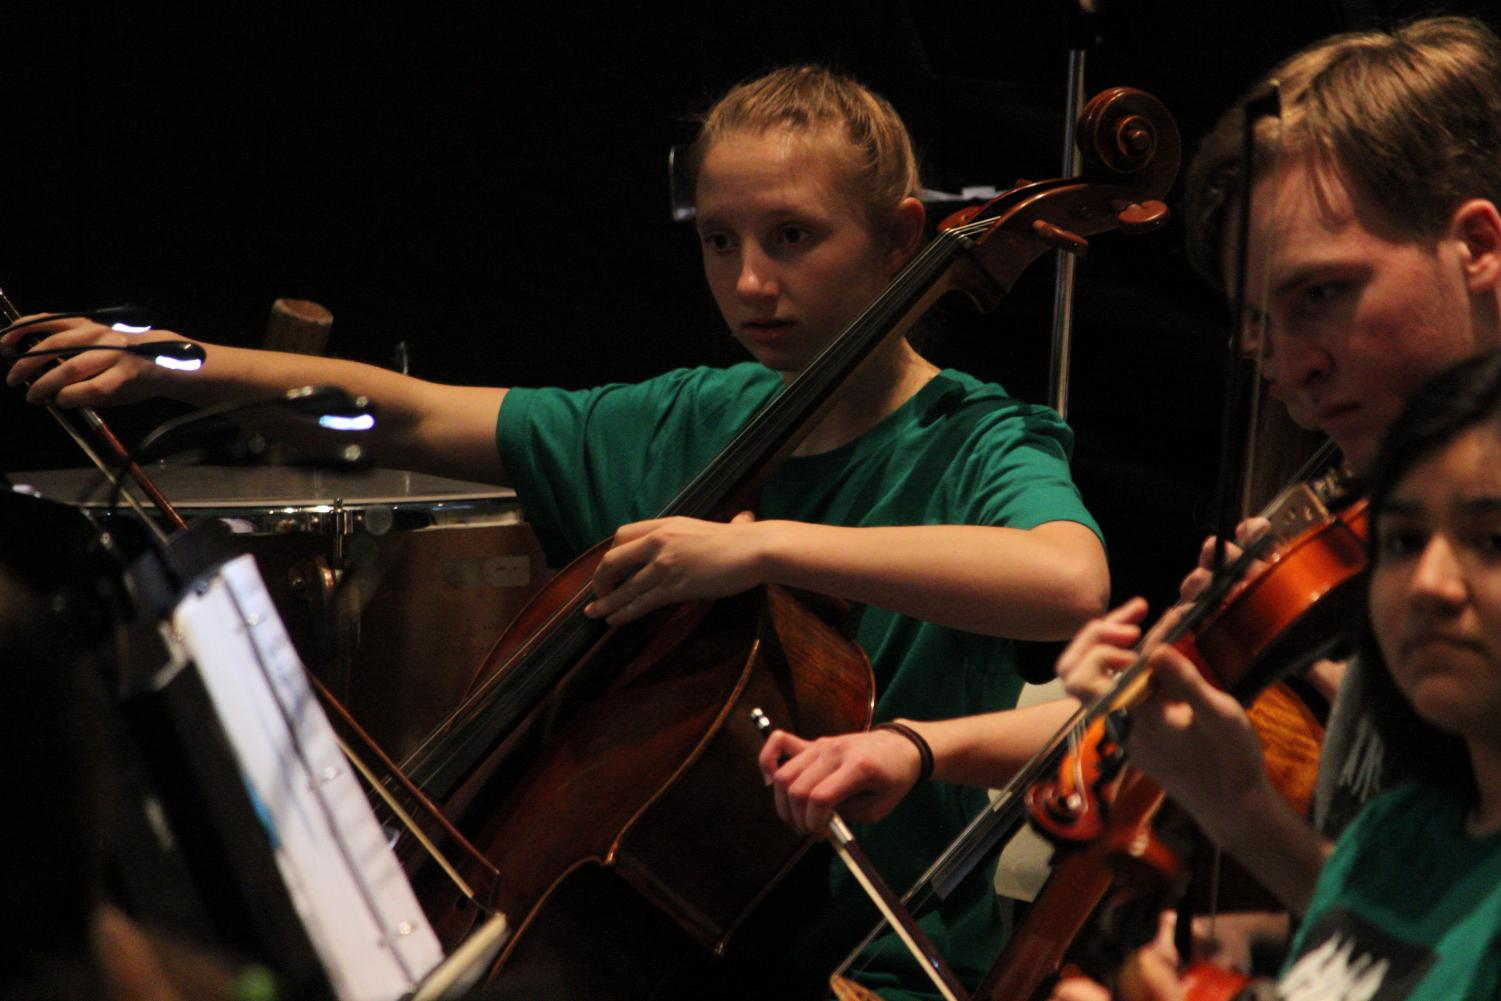 Freshman Amara Foner plays cello in Park's Chamber Orchestra for the musical the Wizard of Oz. The musical was performed by the cast of the Wayzata Community Church March 17.